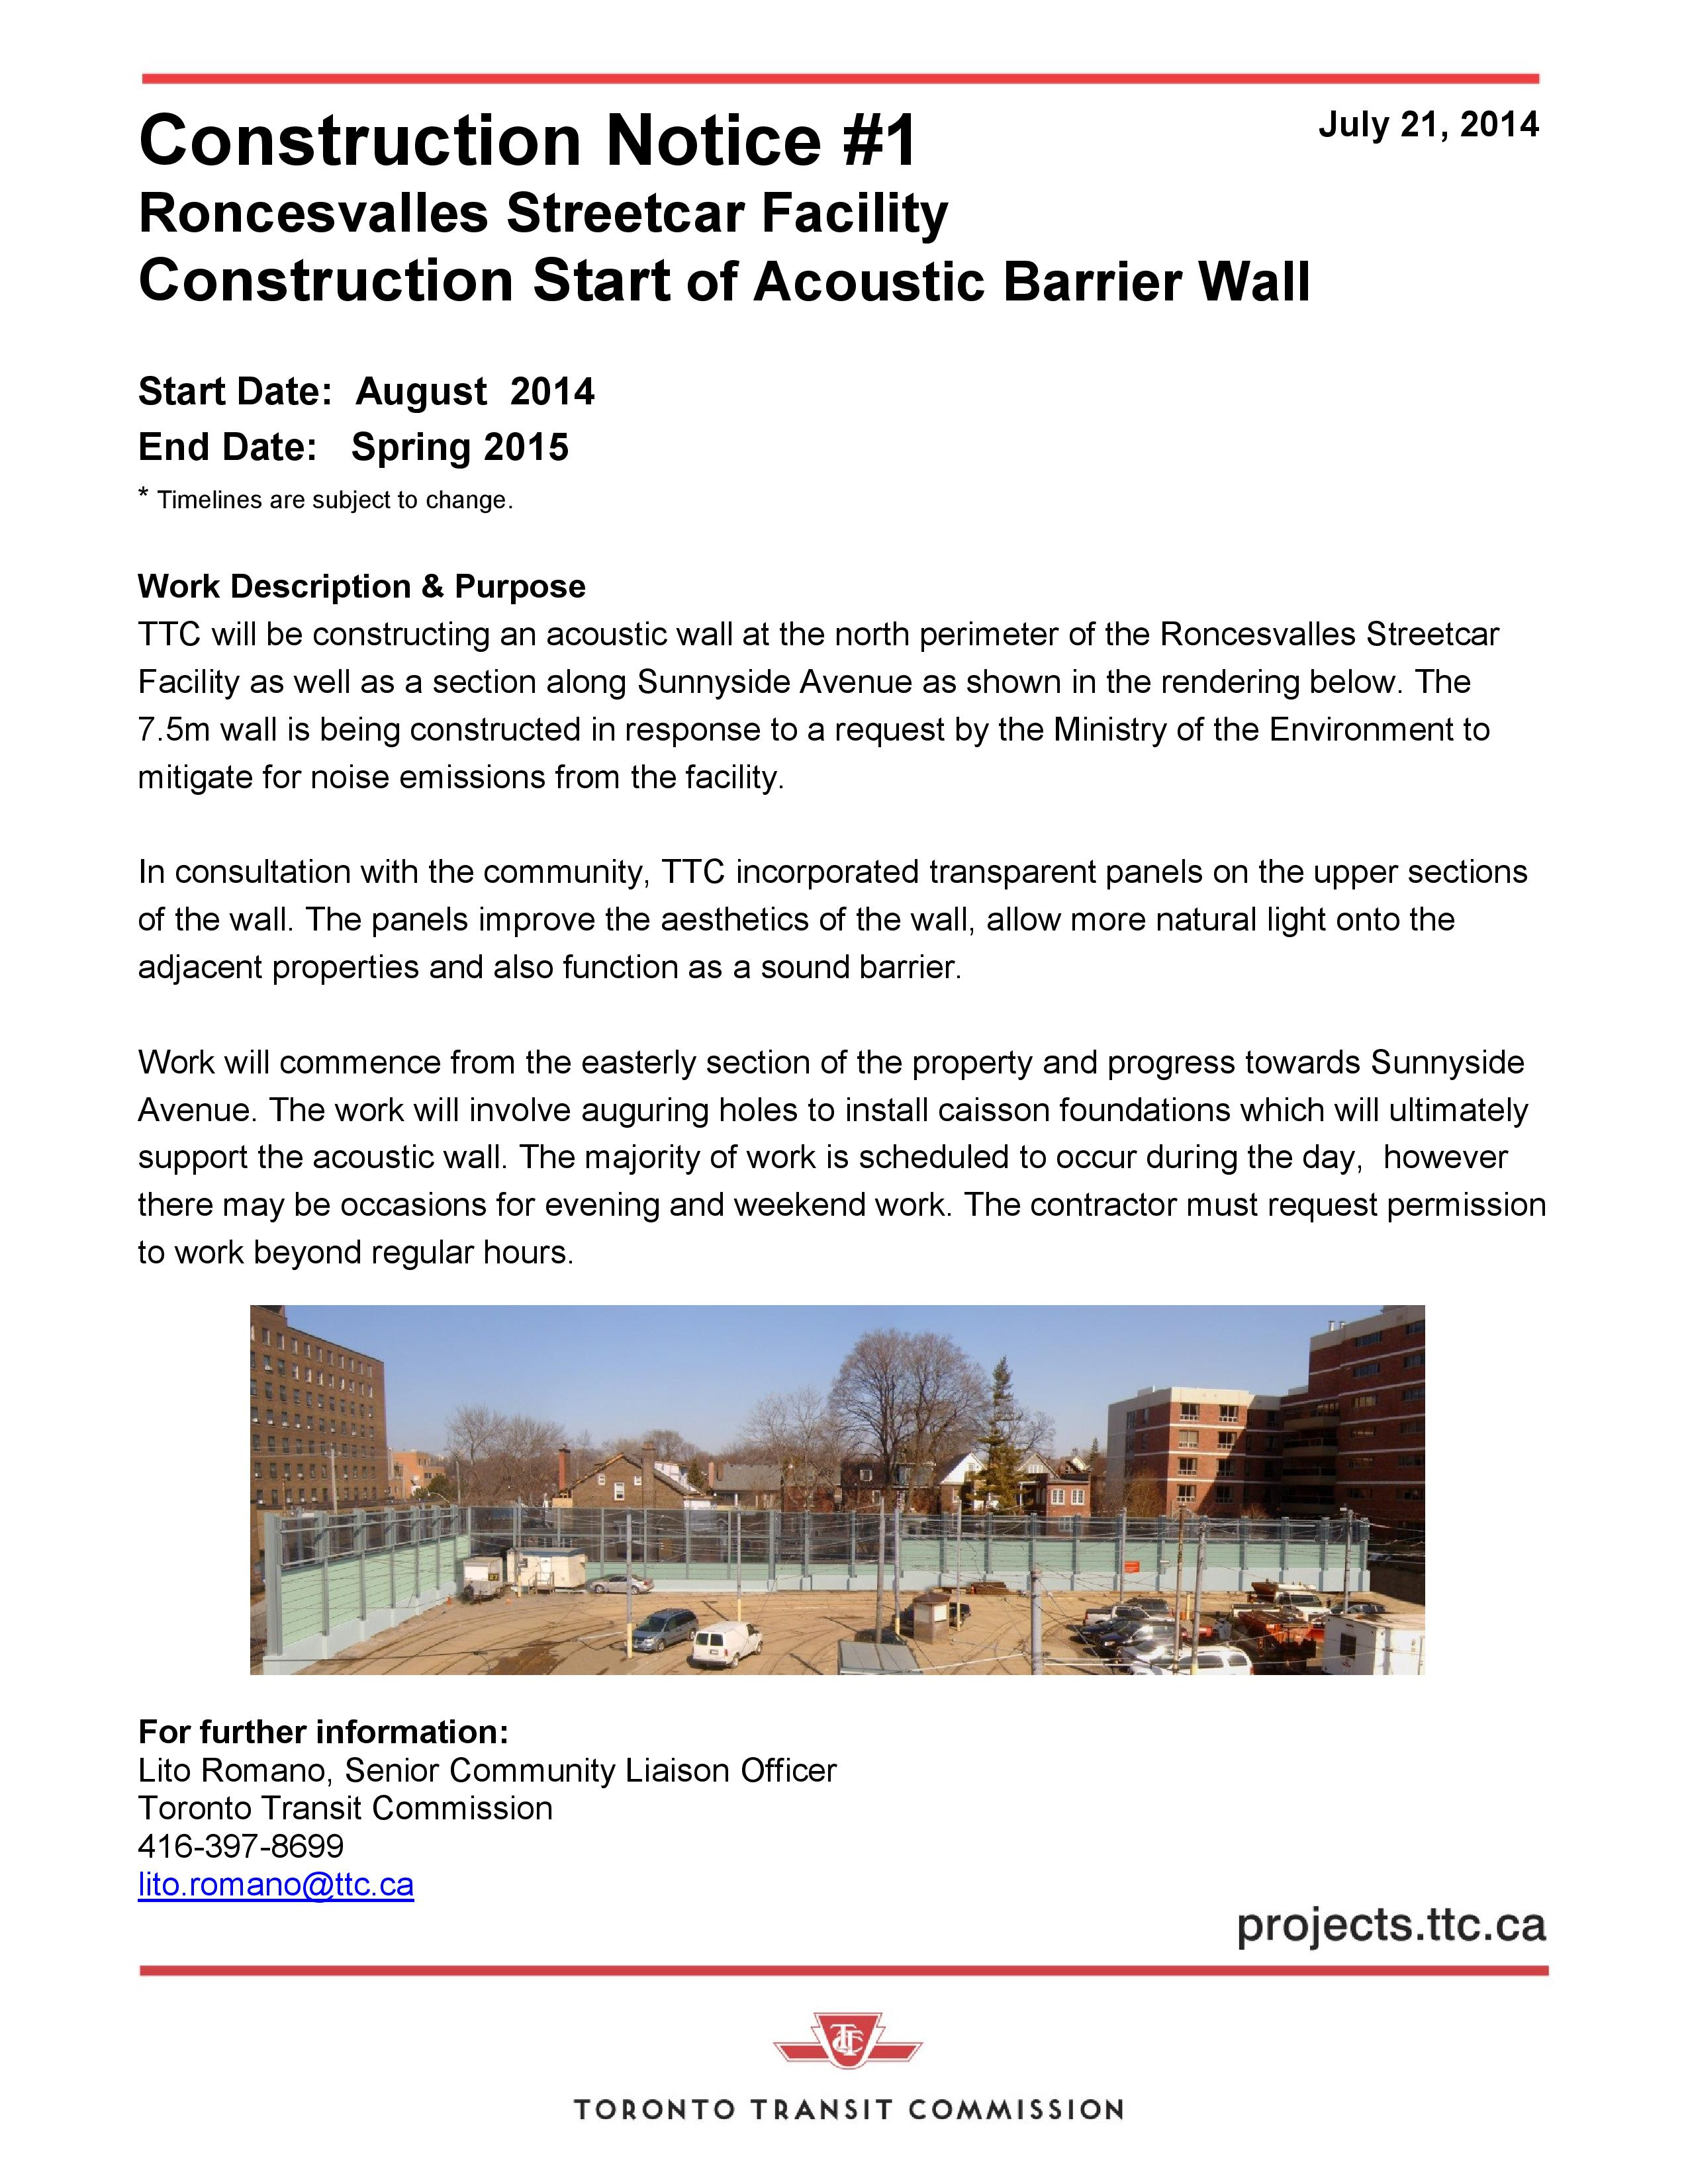 Construction Notice #1 Roncesvalless Acoustic Wall-page-001